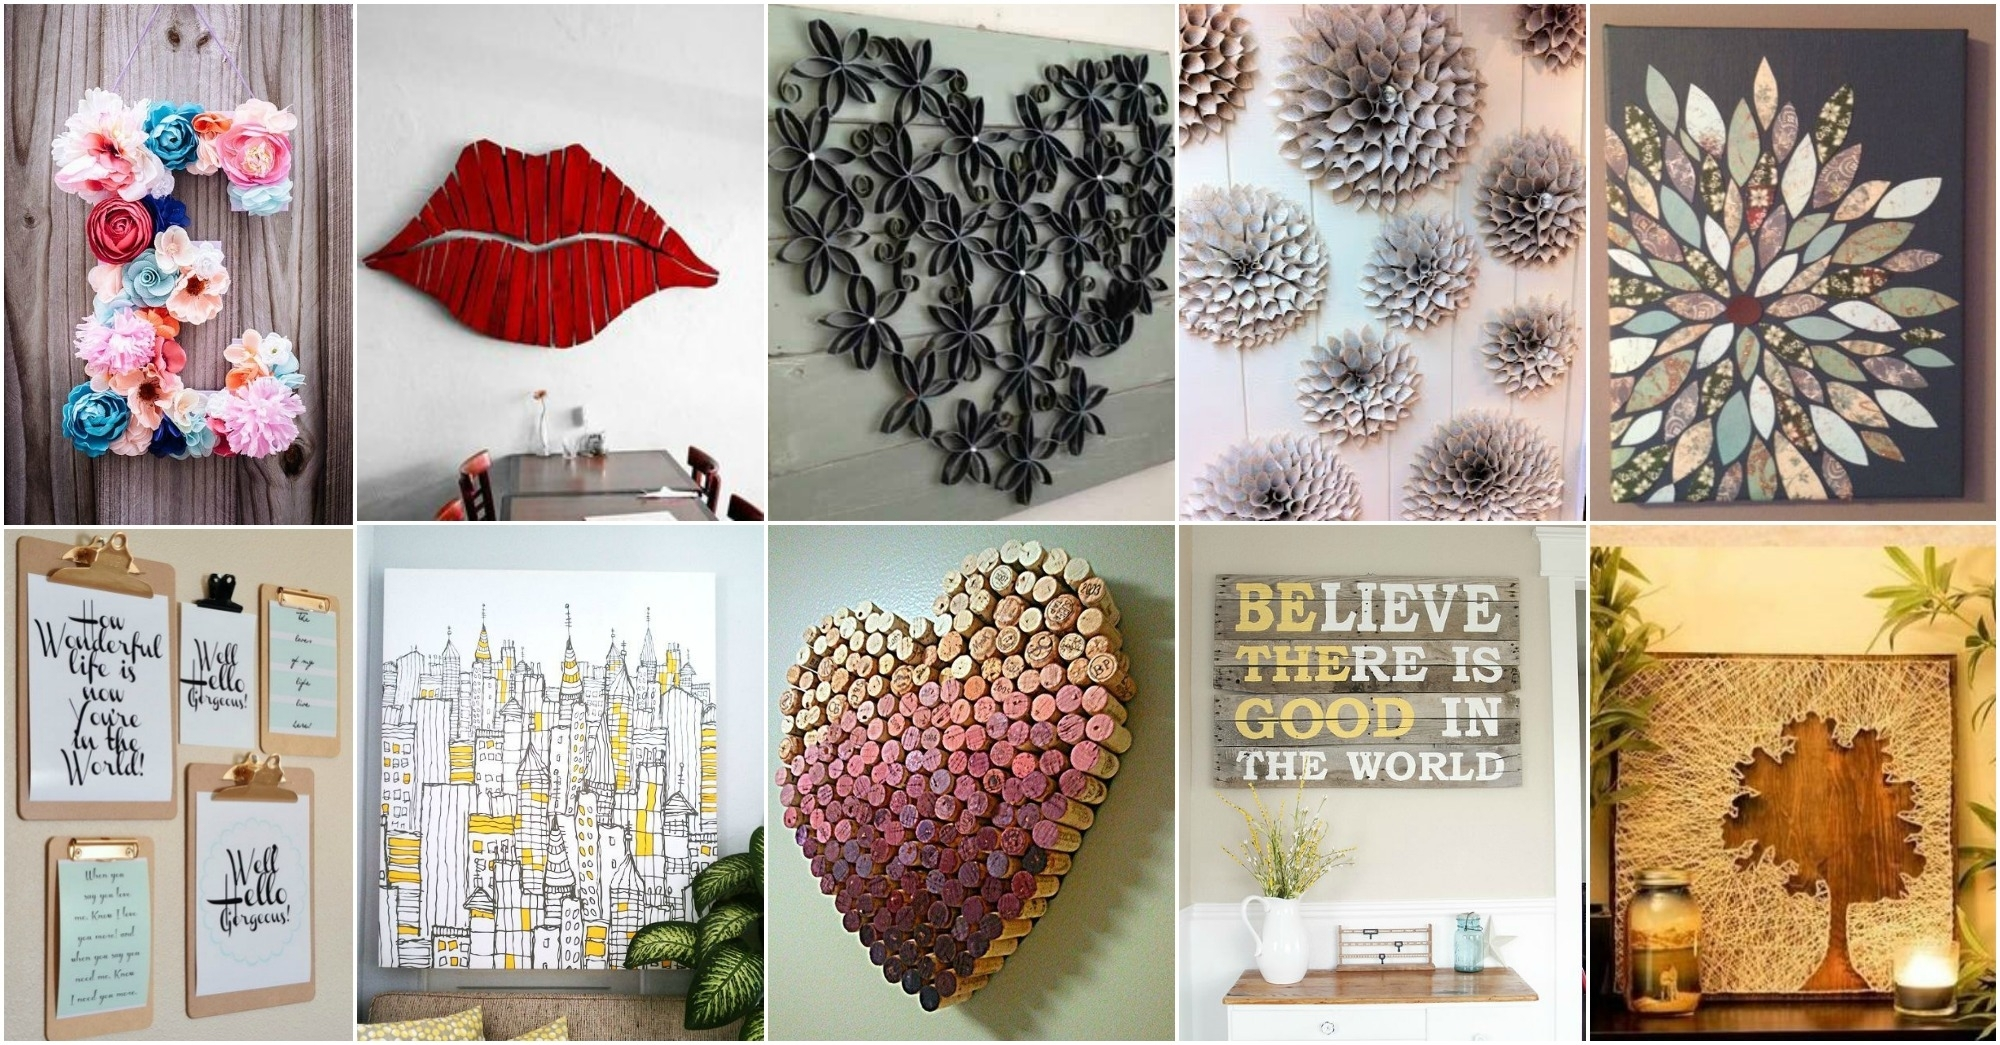 20 Diy Innovative Wall Art Decor Ideas That Will Leave You Speechless Regarding 2018 Art Wall Decor (View 1 of 20)